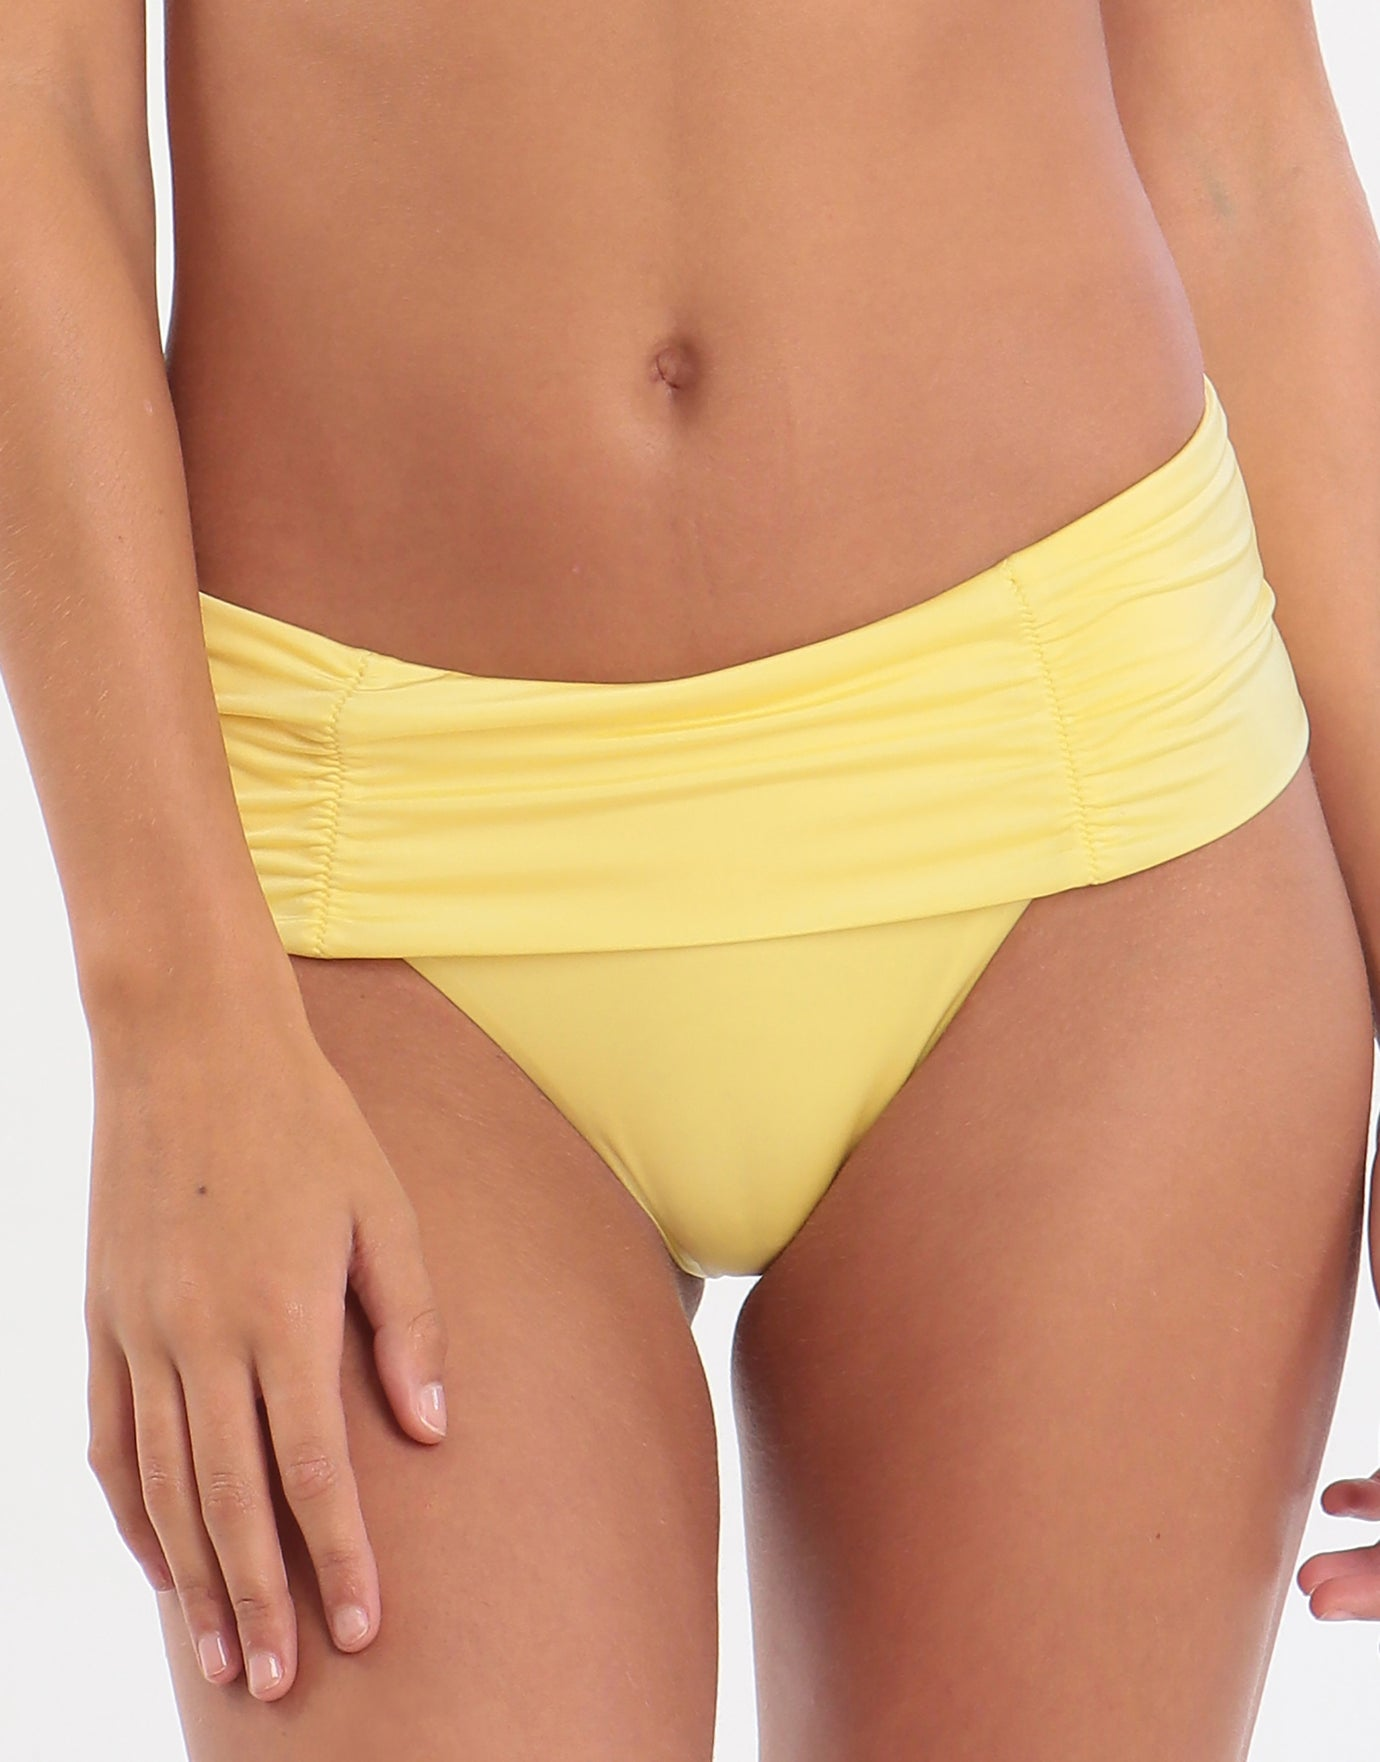 Jo Severin Anna Fold Bikini Bottom - Lemon